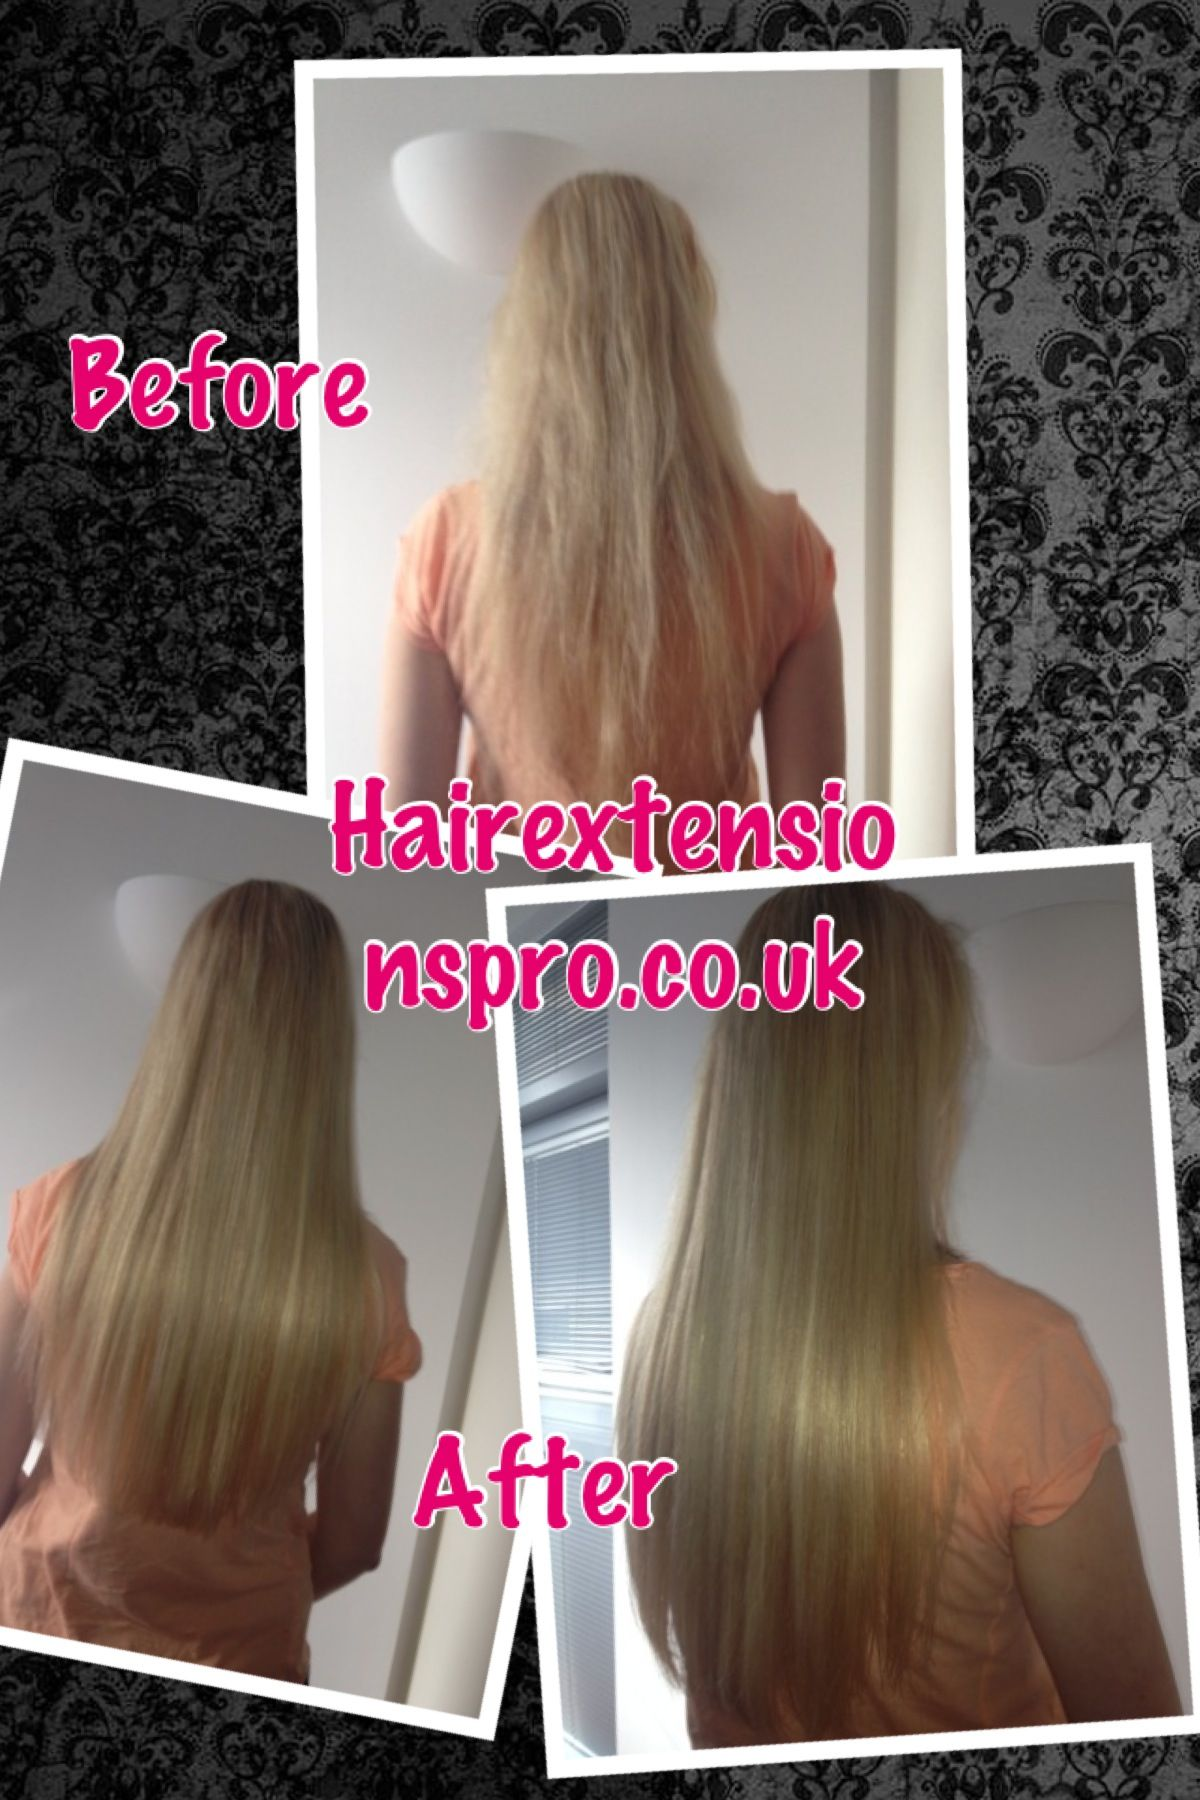 Hair Extensions Specialist In London Hairextensionspro